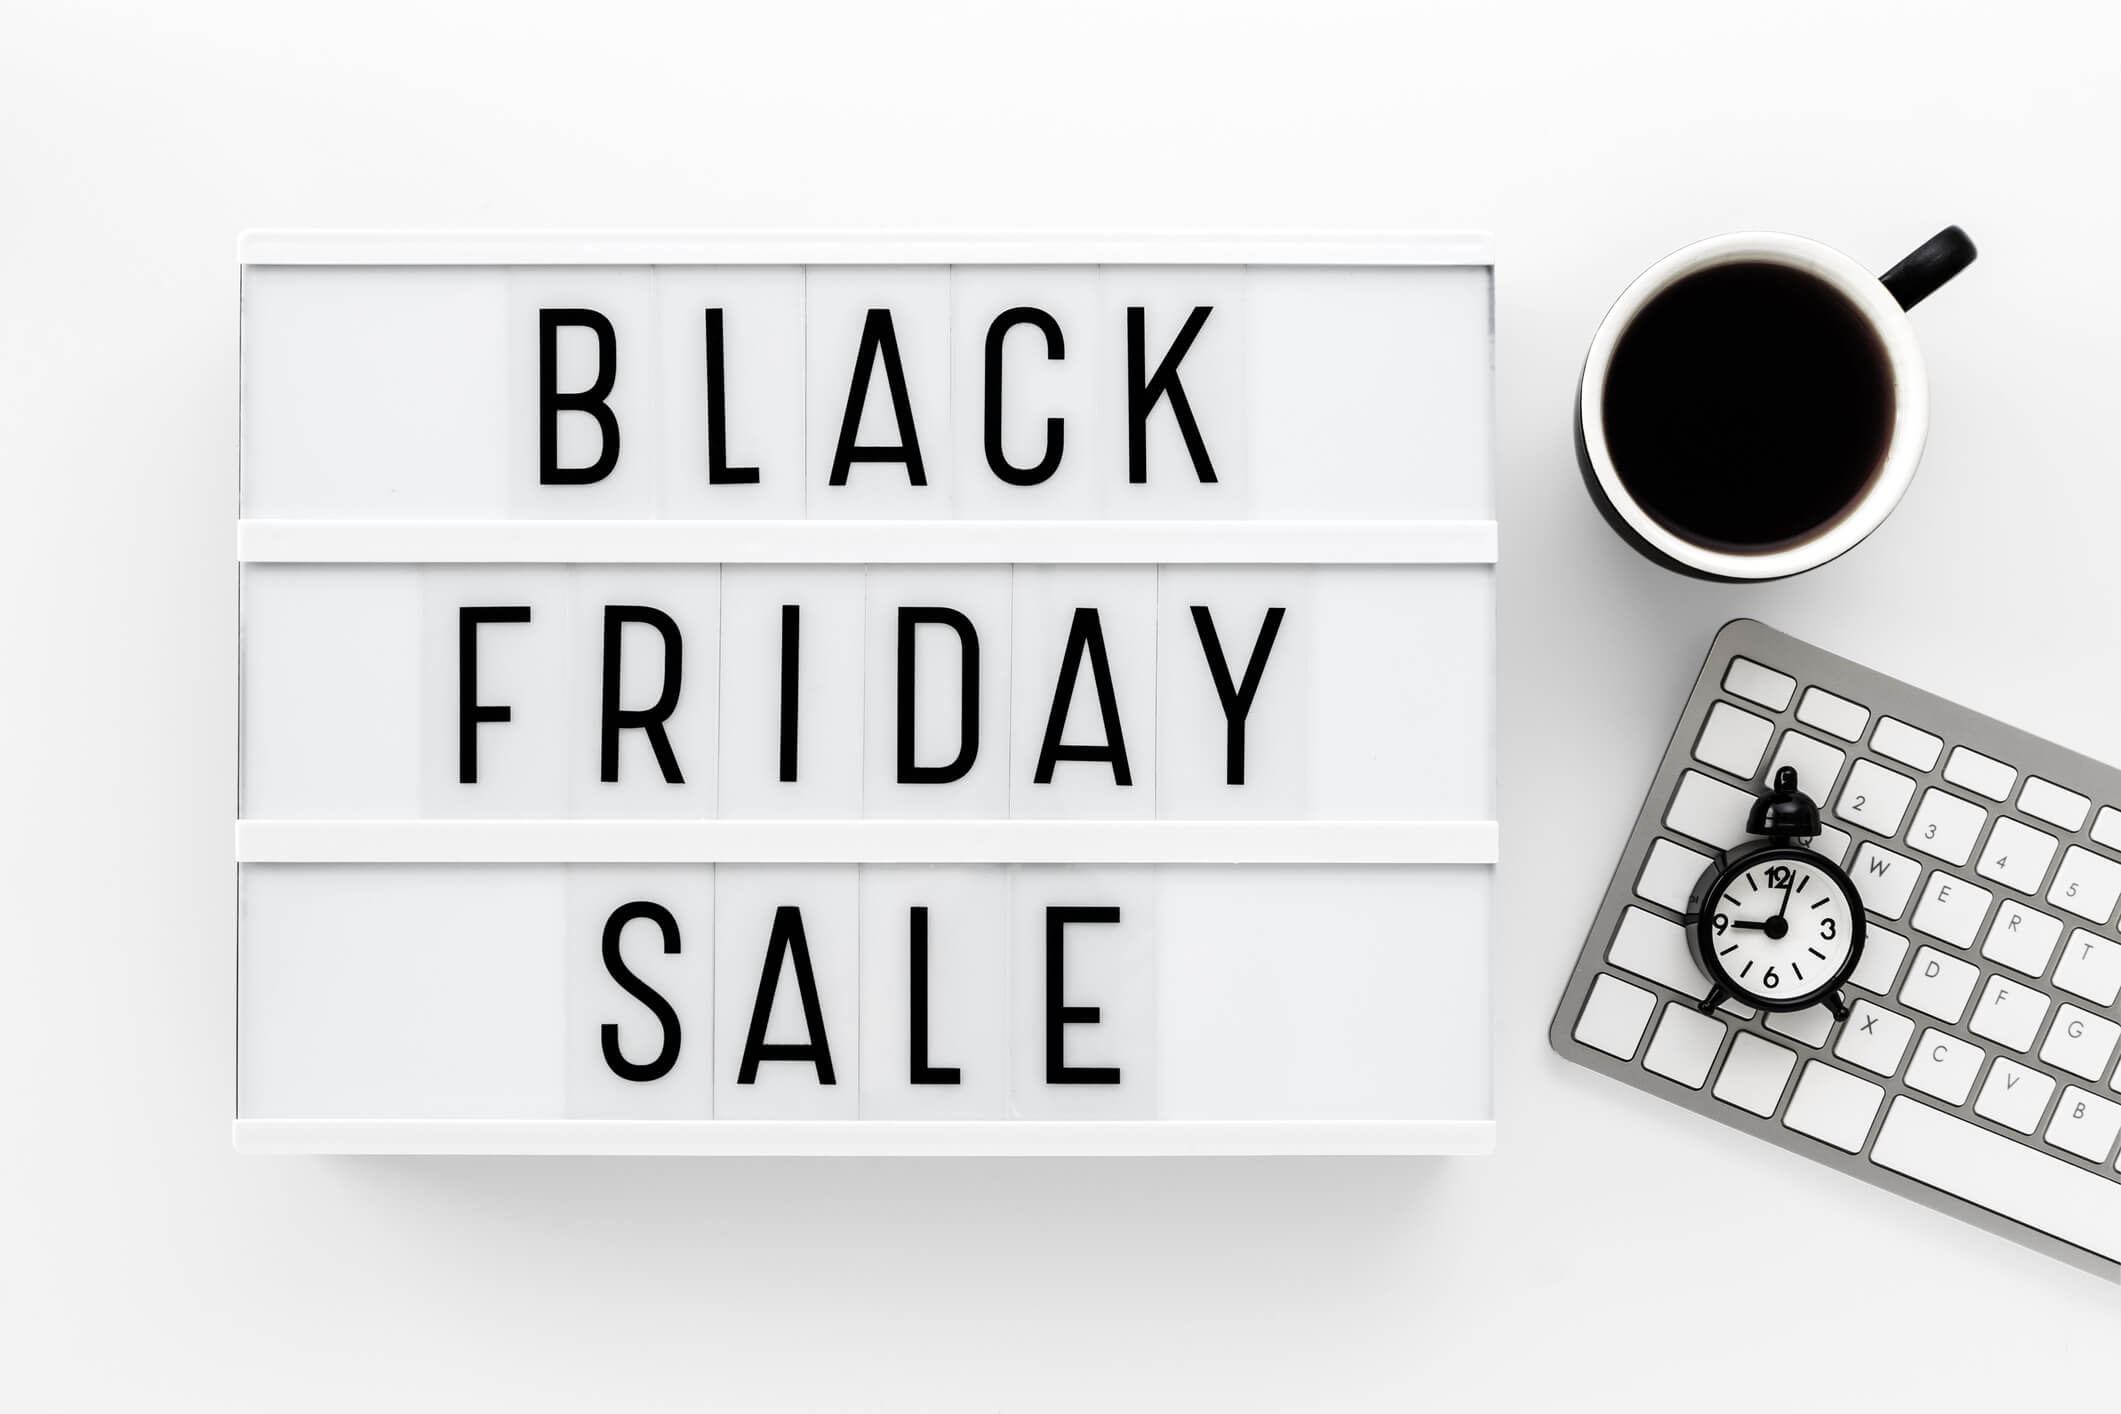 Www Black Friday Black Friday E Commerce Marketing Plan 2018 Black Friday Marketing